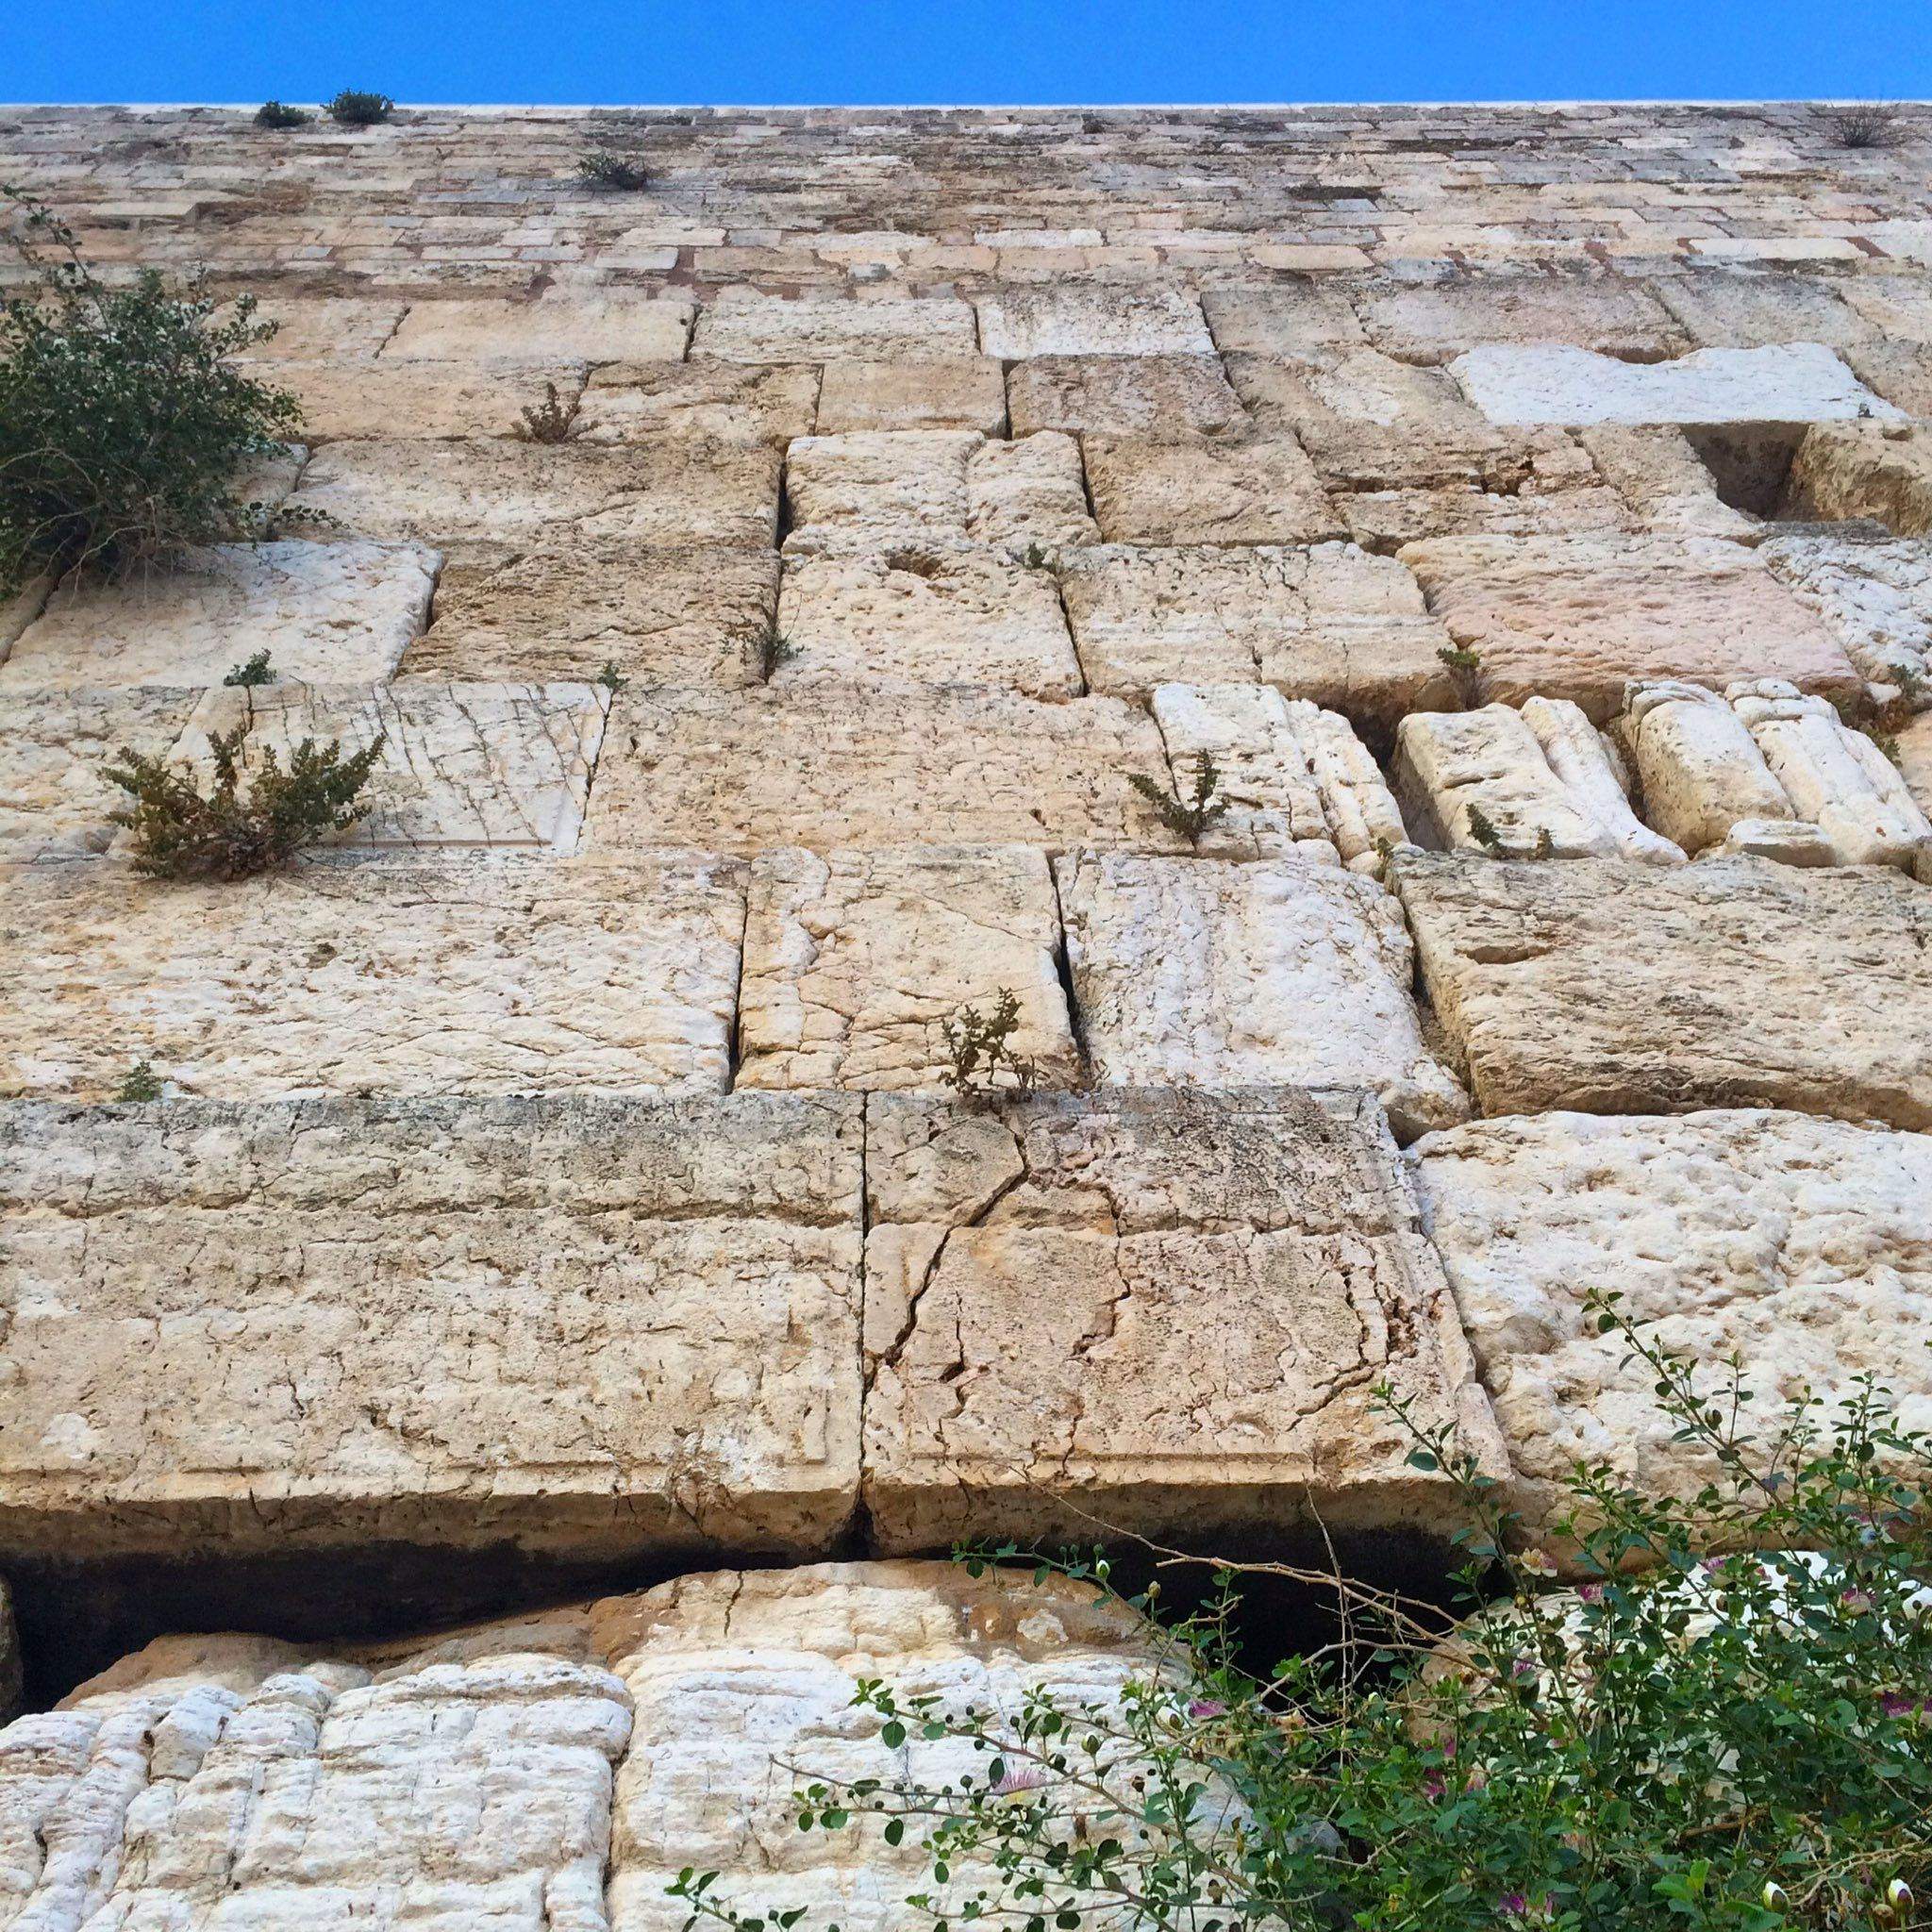 Avi MayerVerified account @AviMayer    Jerusalem Day 2017   I can't explain it, but the wall felt warm, as though it was returning some of the warmth with which it was embraced today. #JerusalemDay